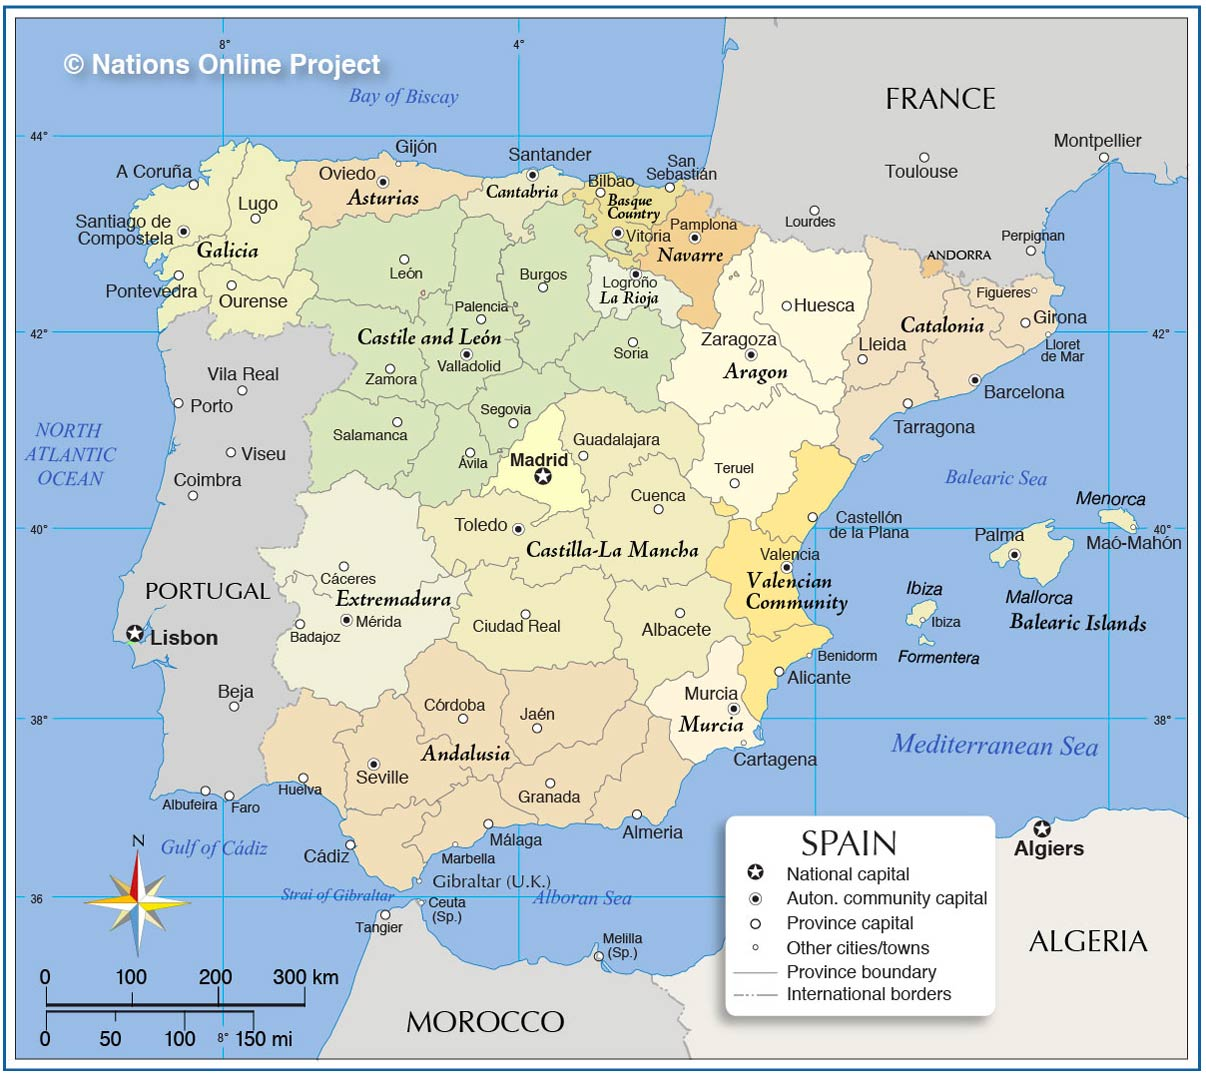 Administrative Map of Spain with Autonomous Communities and Provinces.